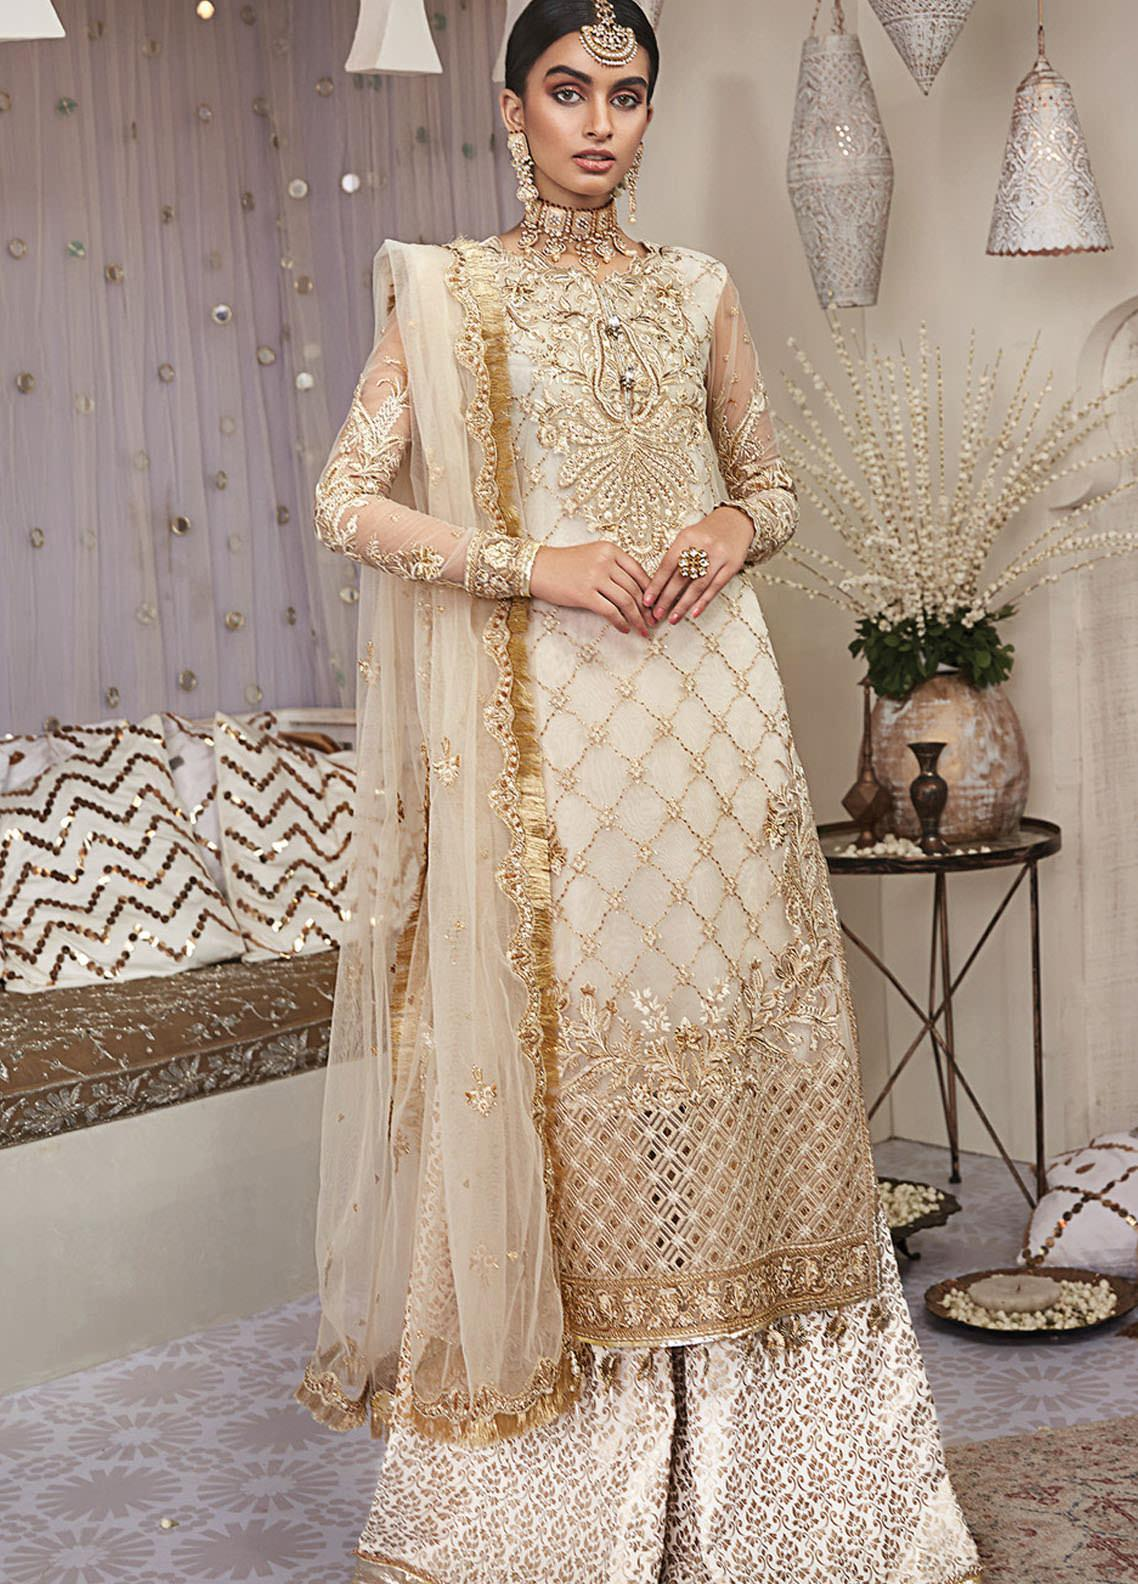 Nargis by Anaya Embroidered Net Unstitched 3 Piece Suit AKC20KR 03 Mehrbano - Wedding Collection